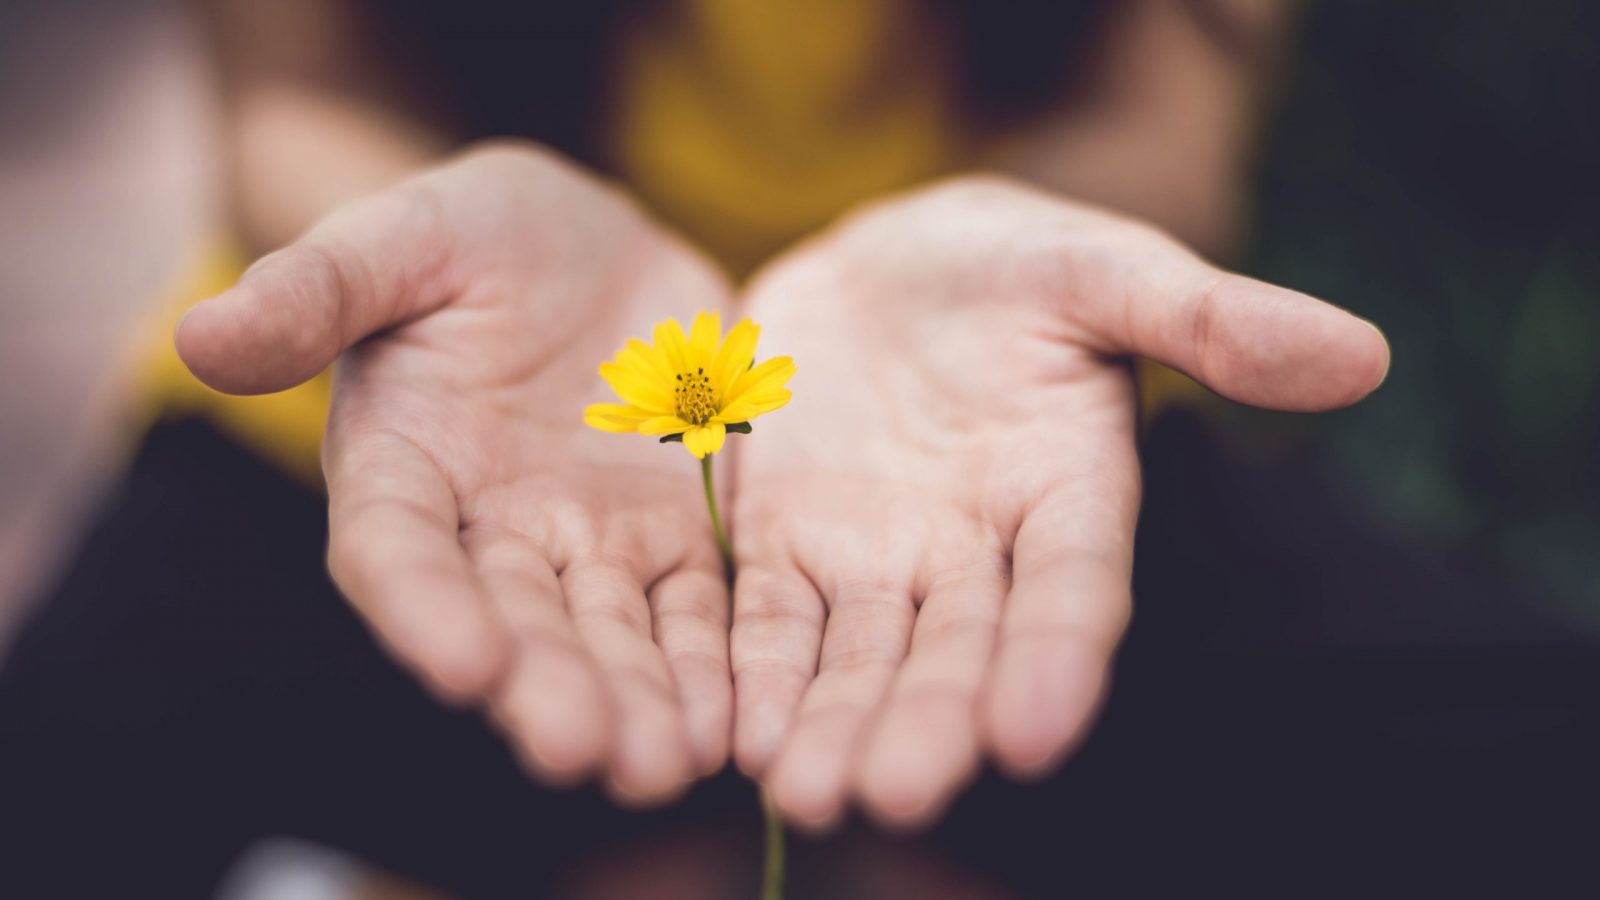 Hands holding a flower.